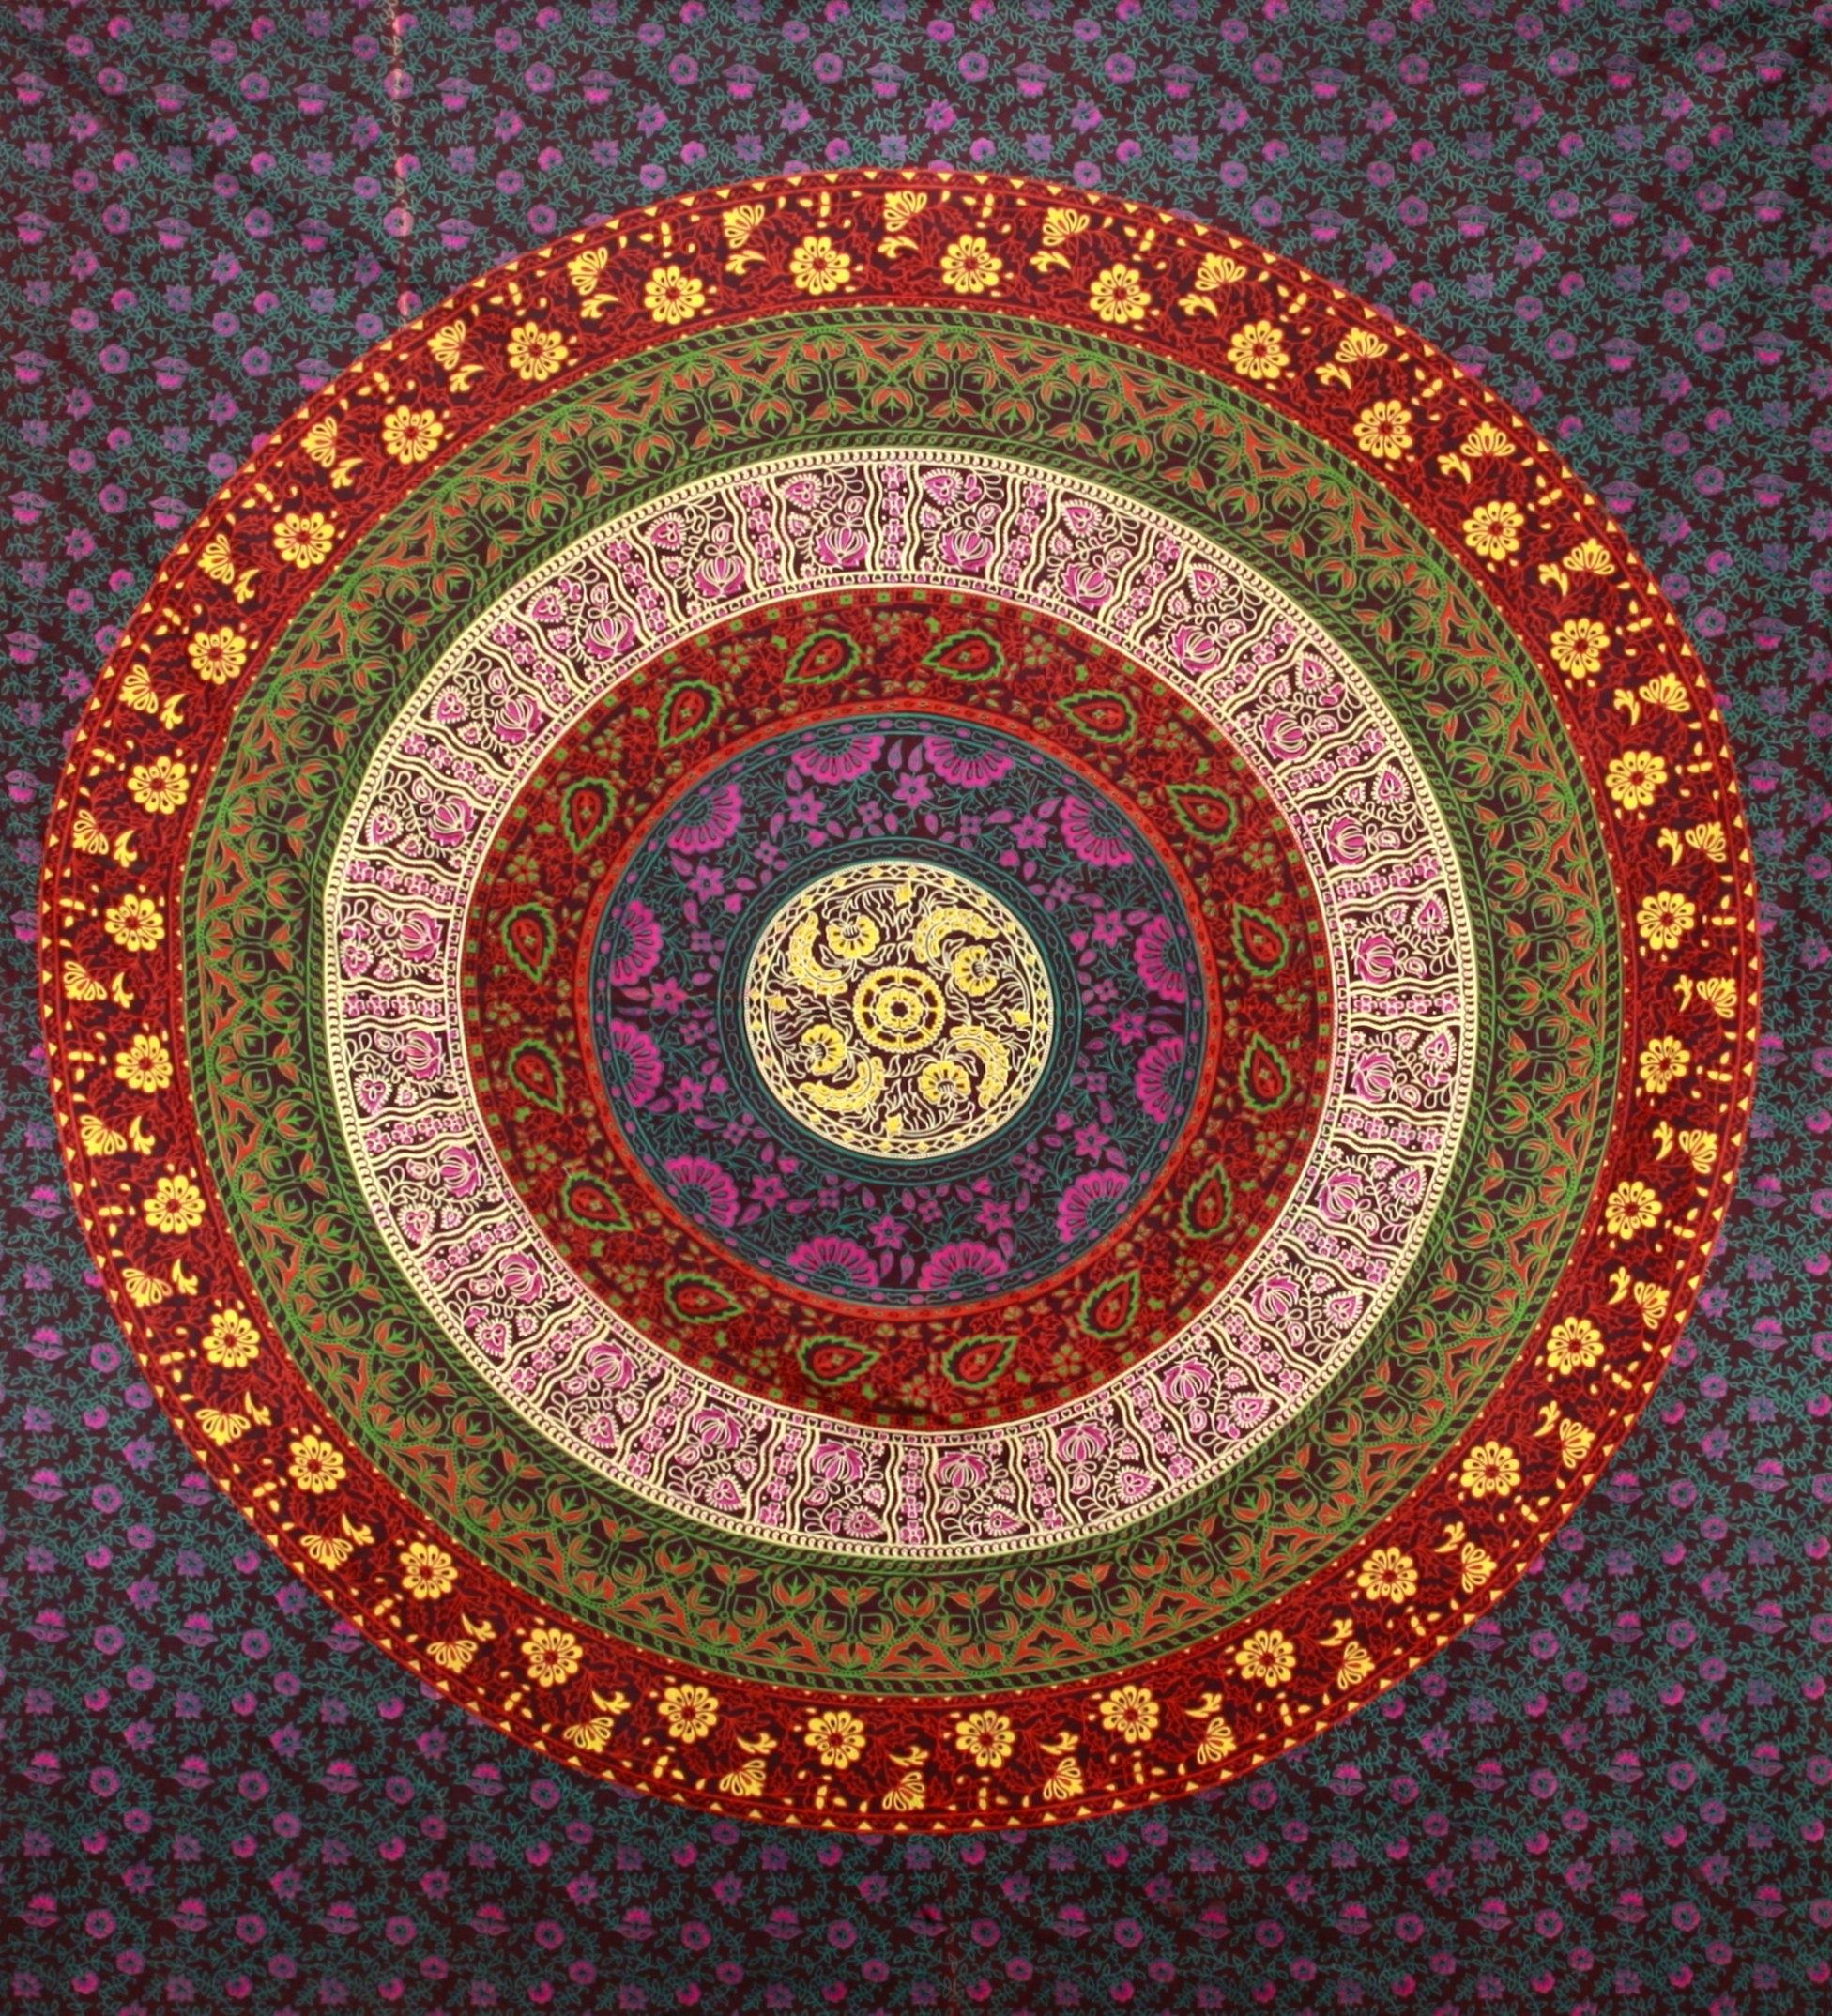 Sunshine Joy Circle Of Flowers Barhmeri Indian Tapestry – Beach Inside Most Up To Date Indian Fabric Art Wall Hangings (Gallery 8 of 15)